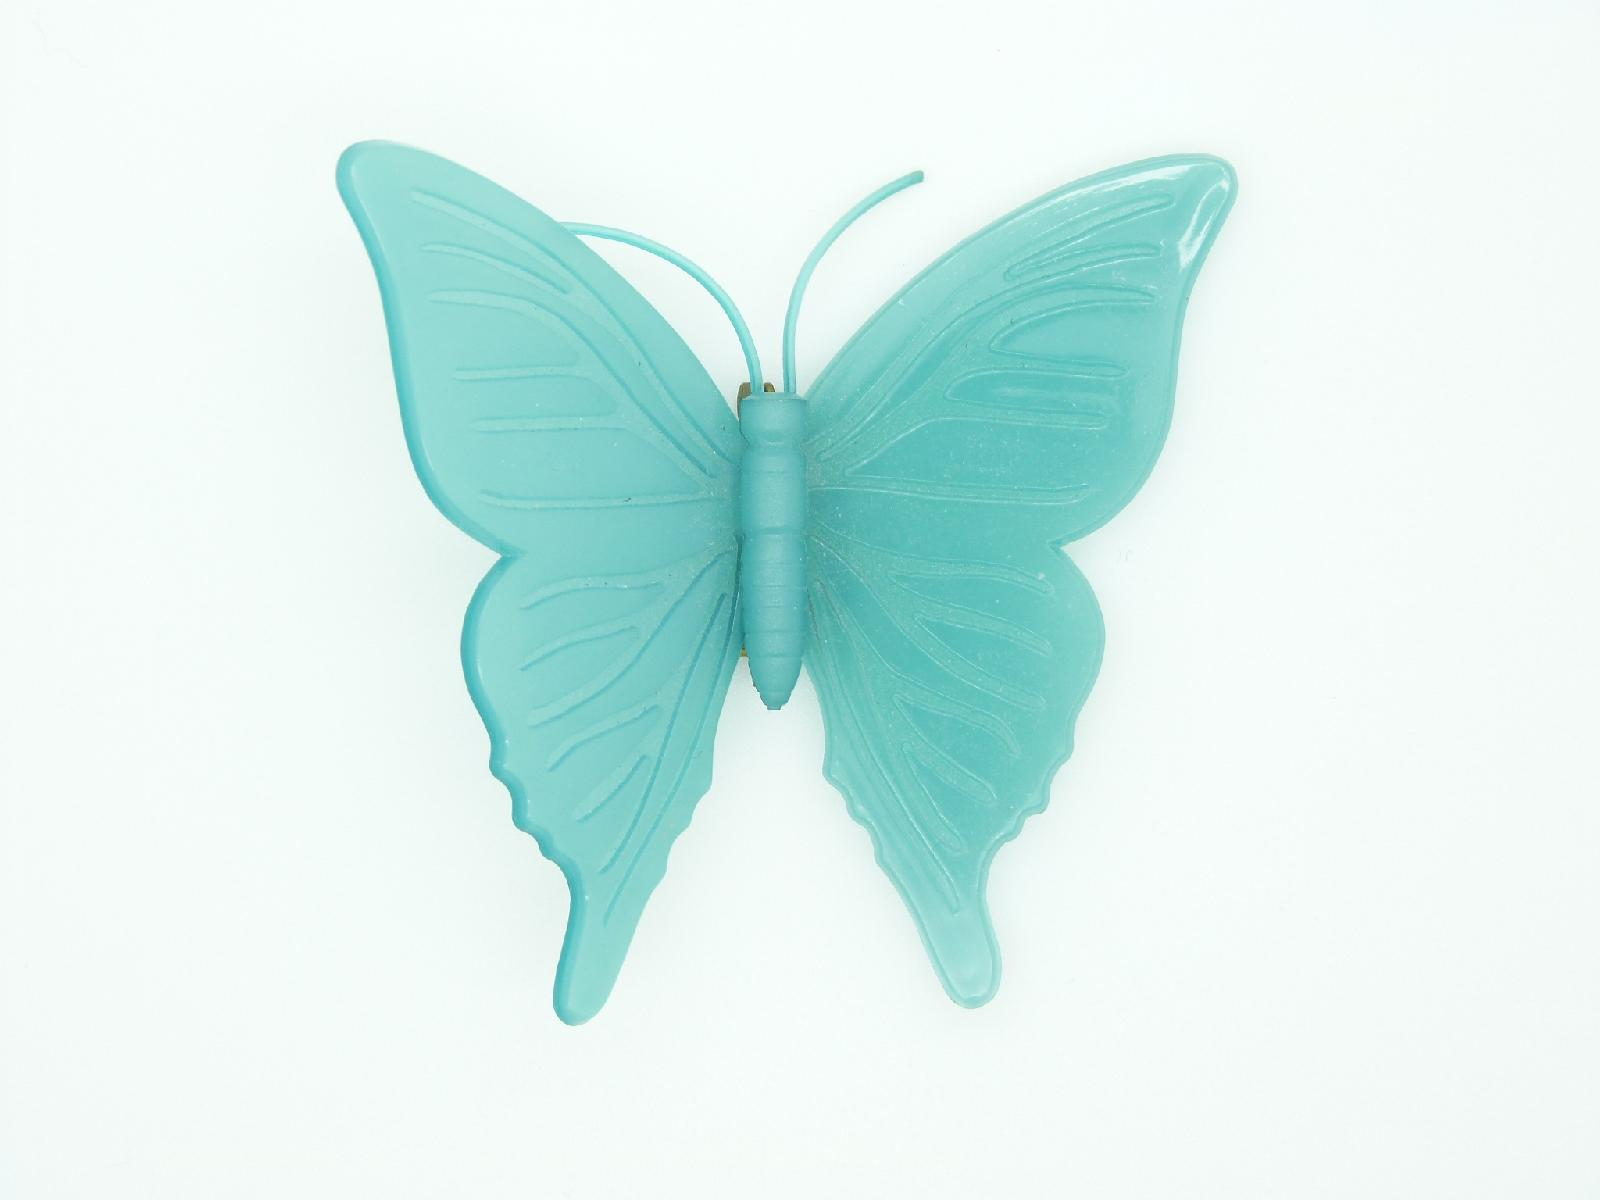 Vintage 60s Signed KD Denmark Early Plastic Teal Coloured Butterfly Brooch